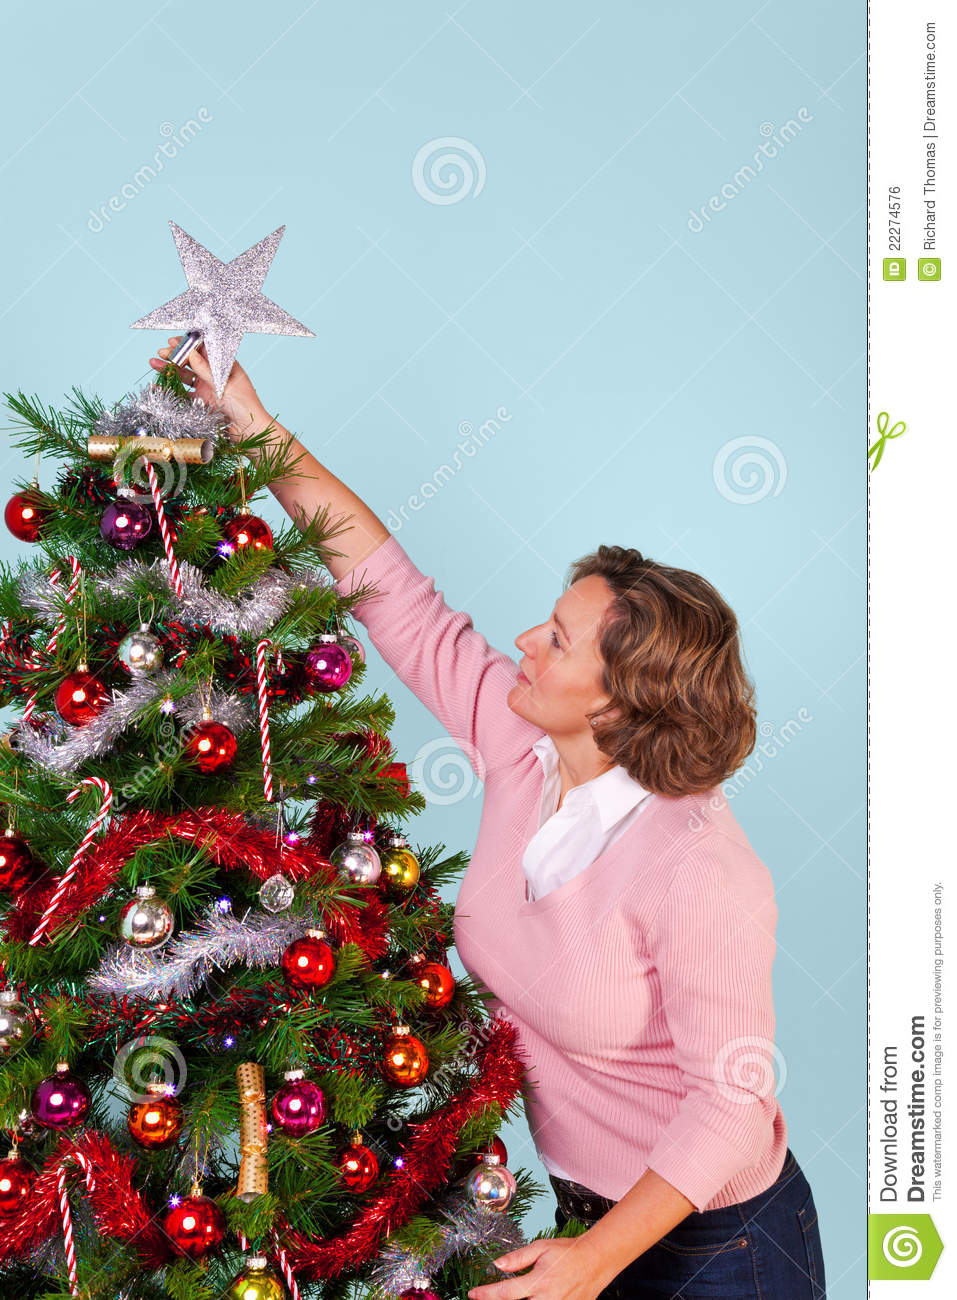 woman putting star on top of christmas tree stock photo image of